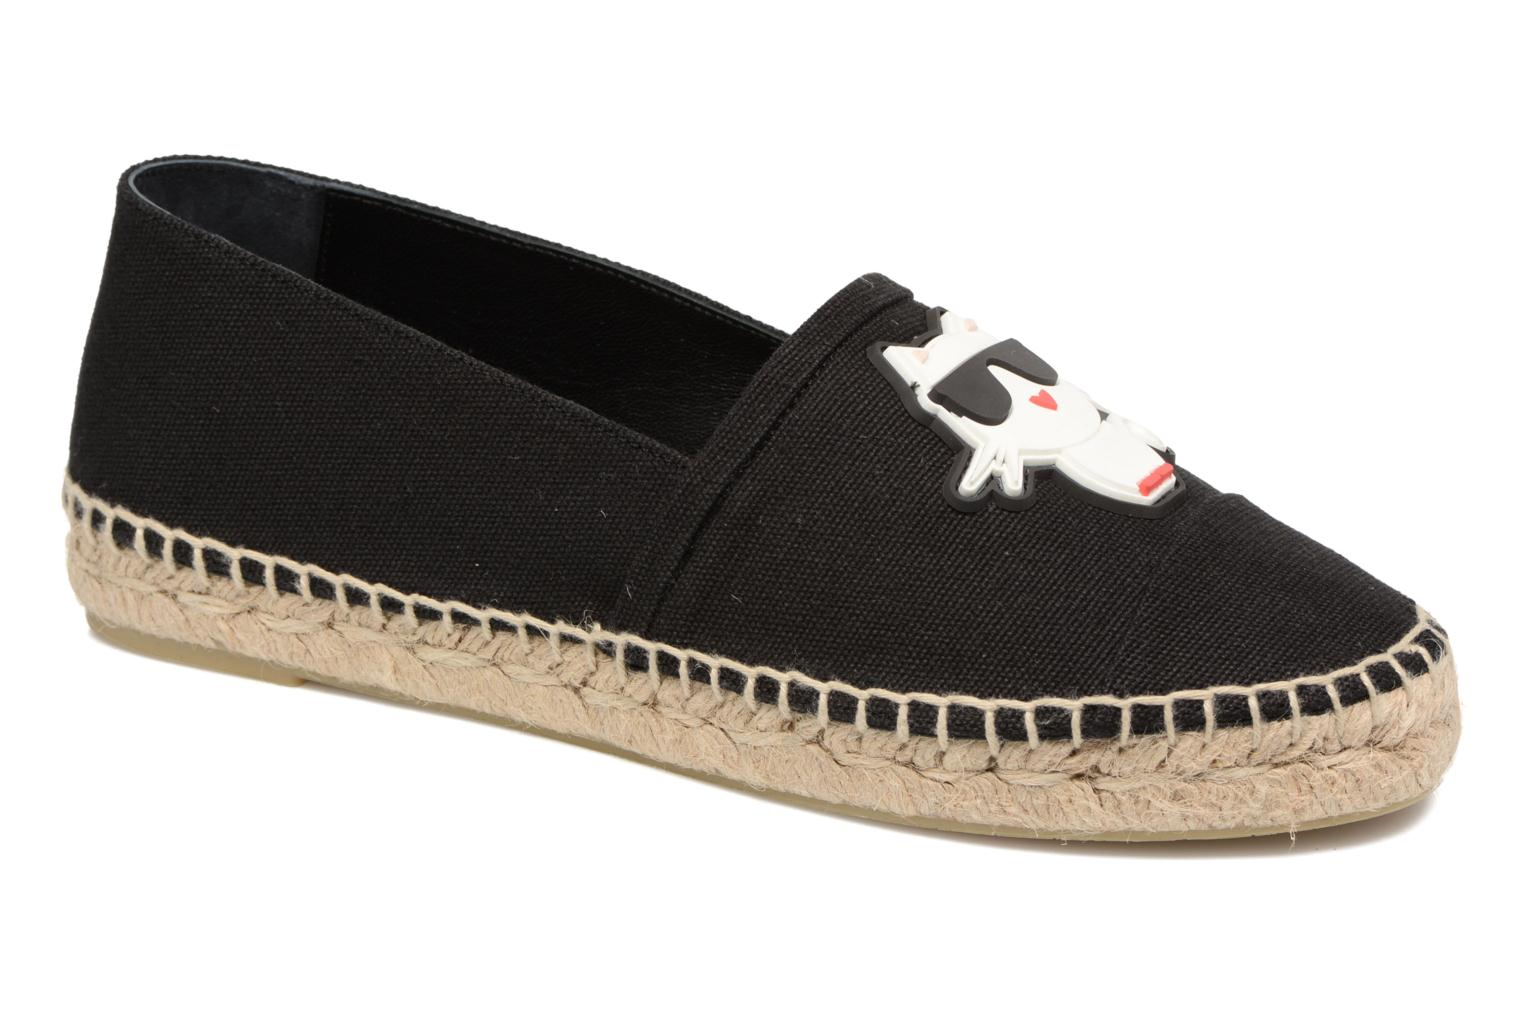 espadrilles-ikonic-espadrille-by-karl-lagerfeld